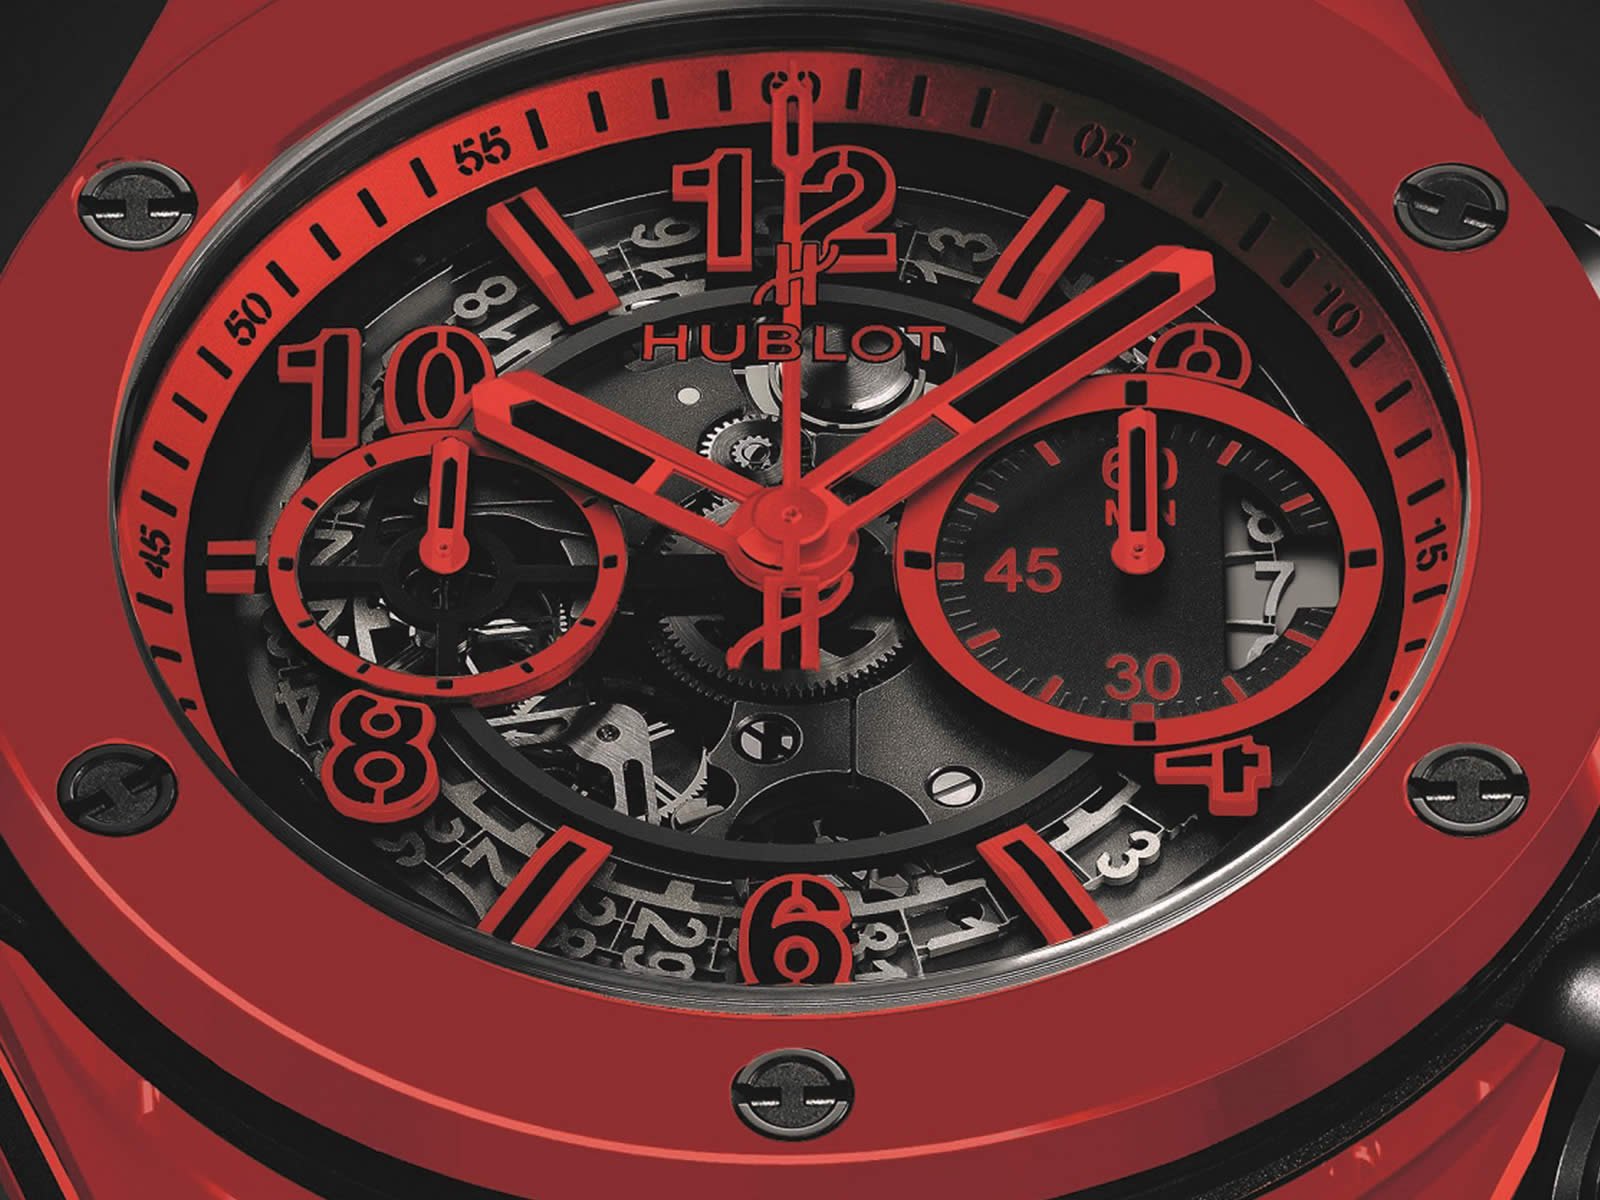 411-cf-8513-rx-hublot-big-bang-unico-red-magic-5-.jpg